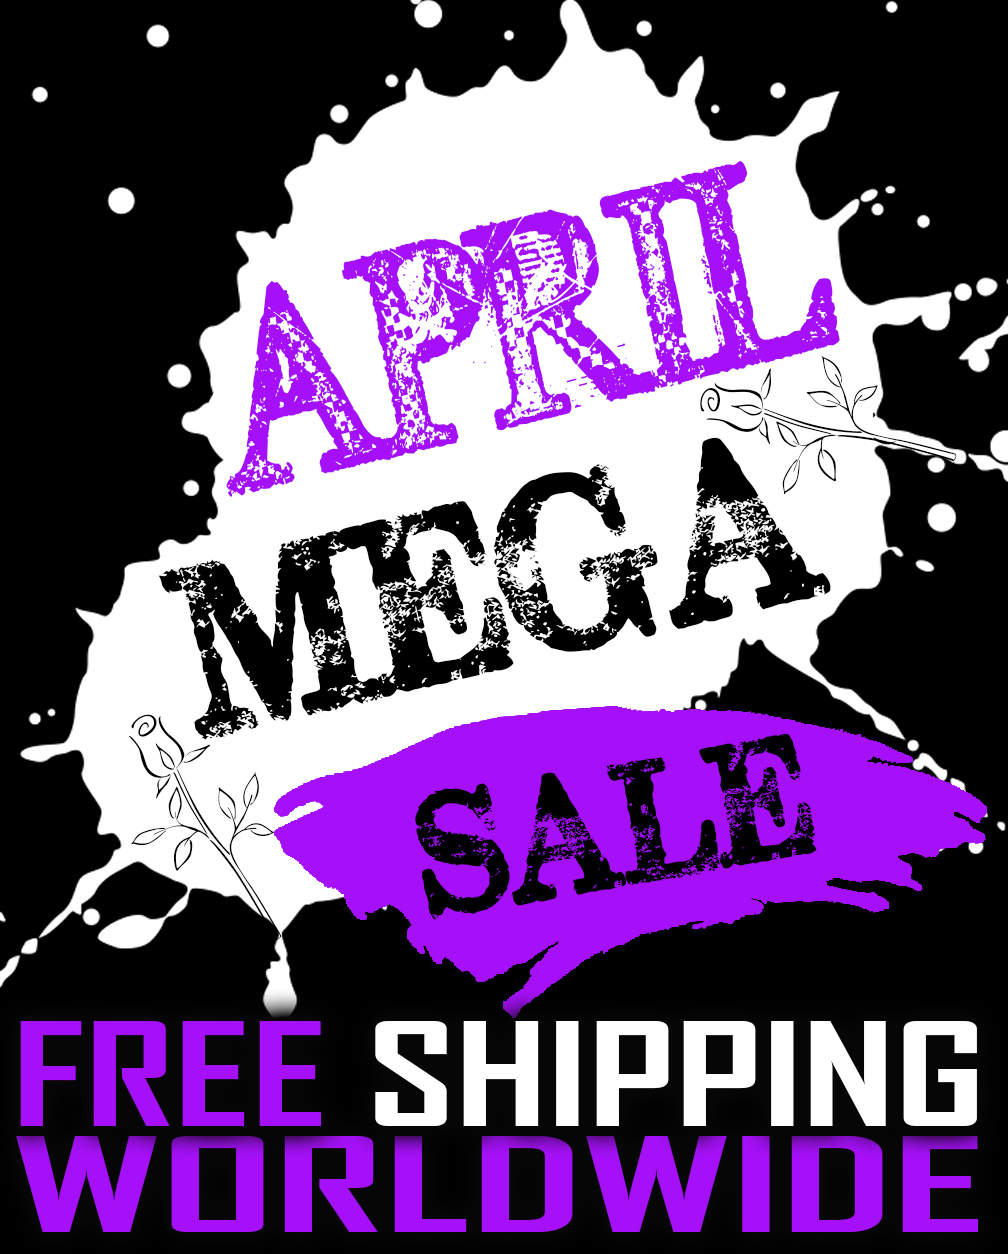 march-mega-sale-free-shipping-2020.jpg